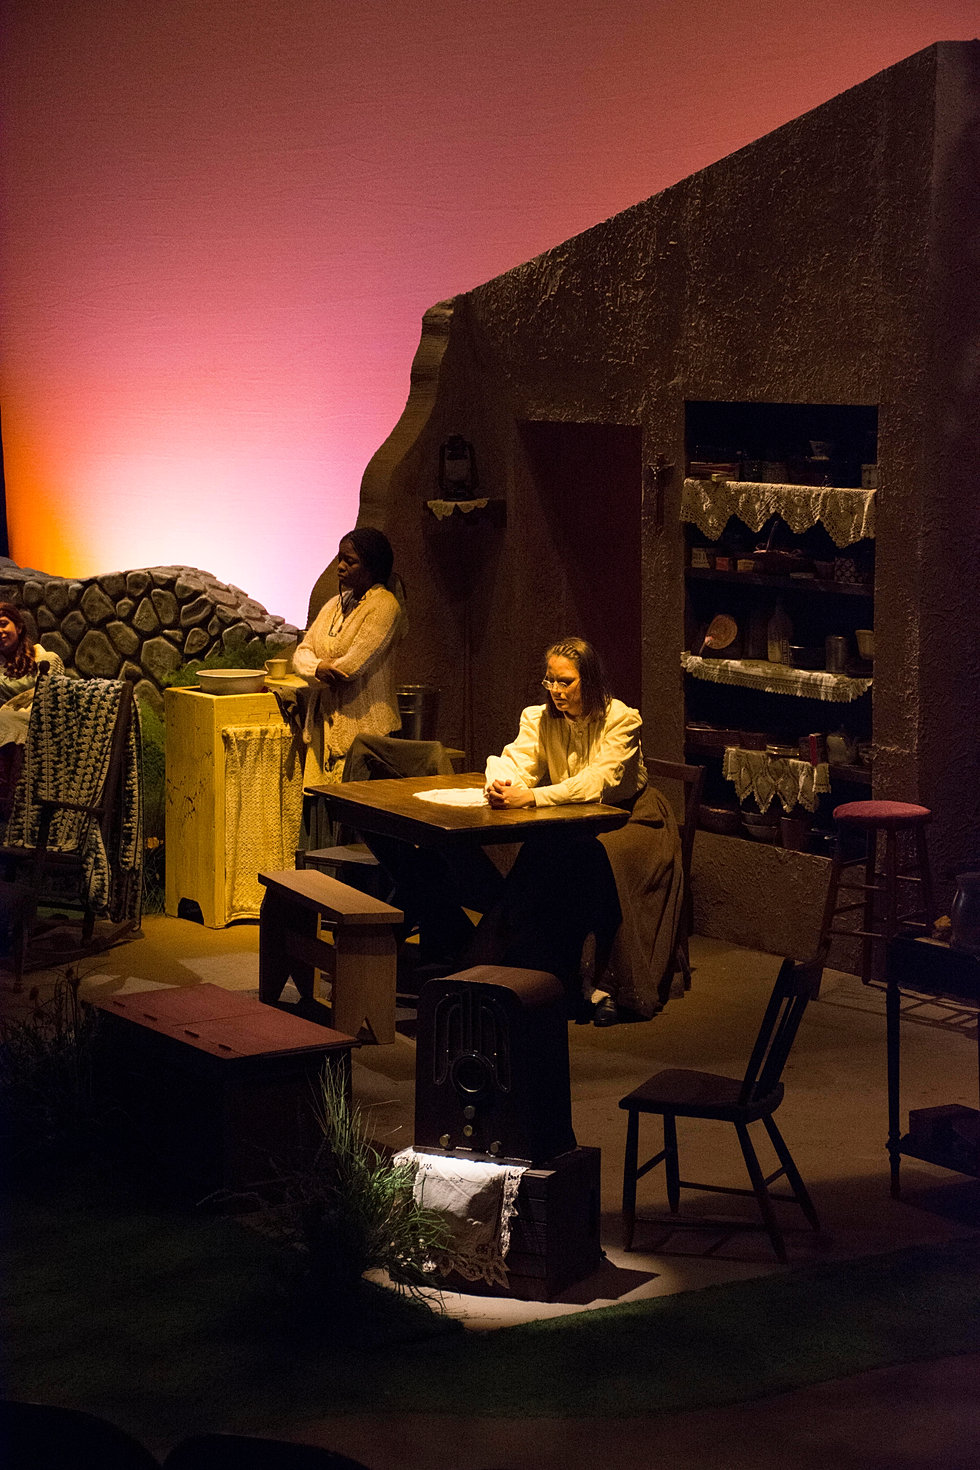 dancing at lughnasa dance scene 128534 results for dancing at lughnasa narrow 2018 pride and prejudice is a 19th-century novel about unmarried people dancing with scene 4 six other.